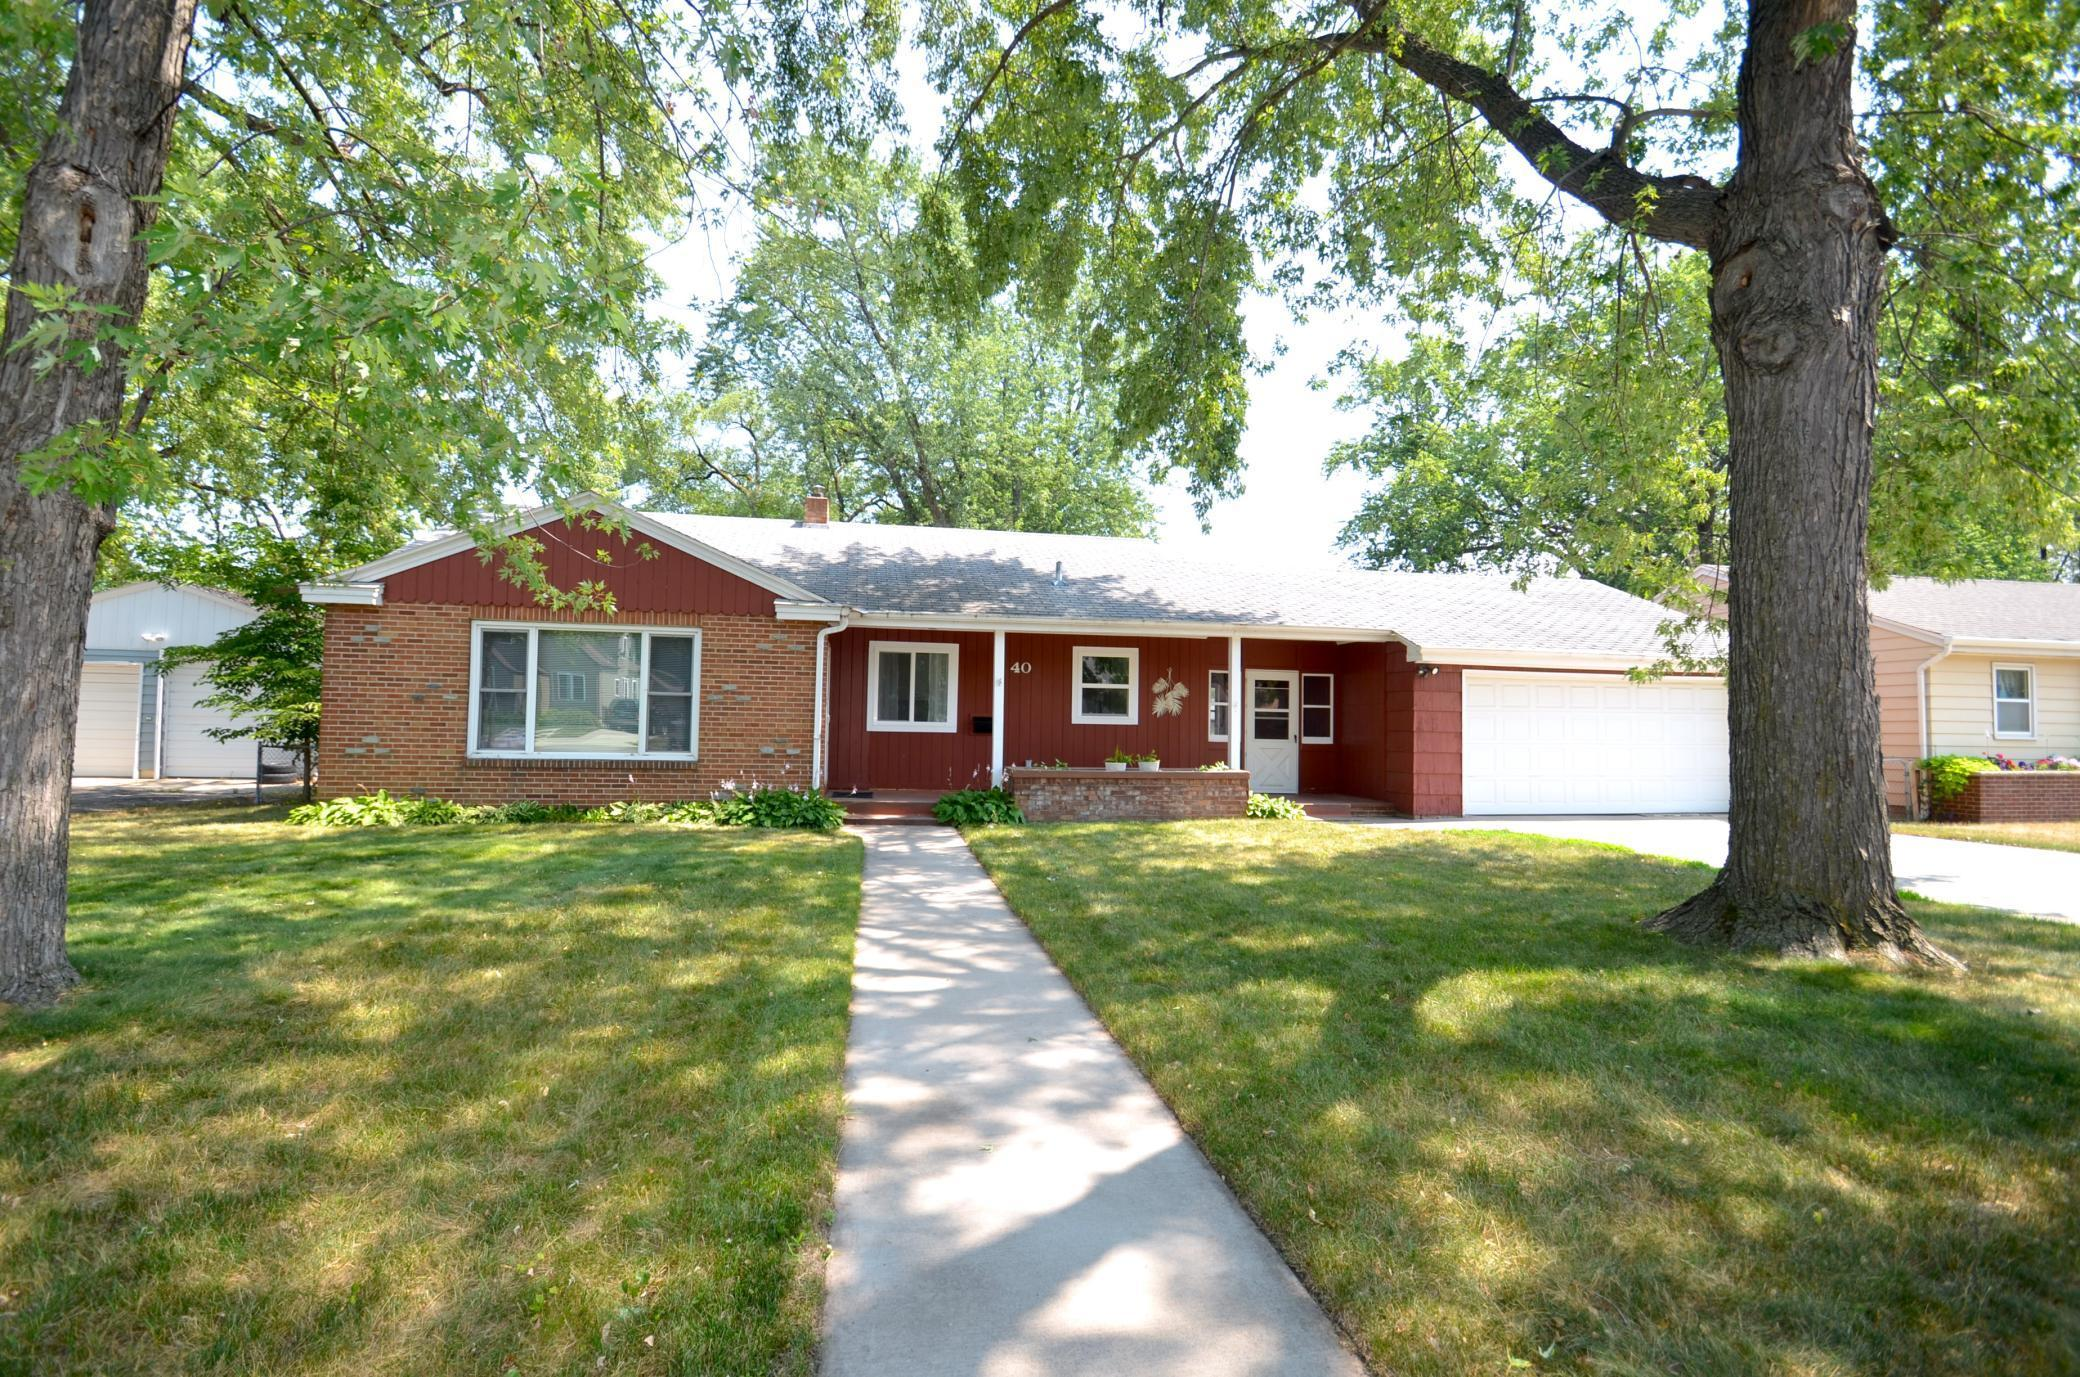 Exceptional rambler with many updates located in North St Cloud. Enter through the covered front porch, cozy living room with abundant natural light, beautifully remodeled kitchen with stainless steel appliances, new cabinets, countertops, breakfast bar, and dinette area. Main floor also features three bedrooms with newer carpet, built in storage space, and full bathroom. Lower level with  spacious family room w/ bar, office, bonus area would make a great reading nook, laundry/utility room, and storage. Breezeway between house and garage steps out into the fenced backyard with storage shed and concrete patio. Schedule your showing before it's gone!